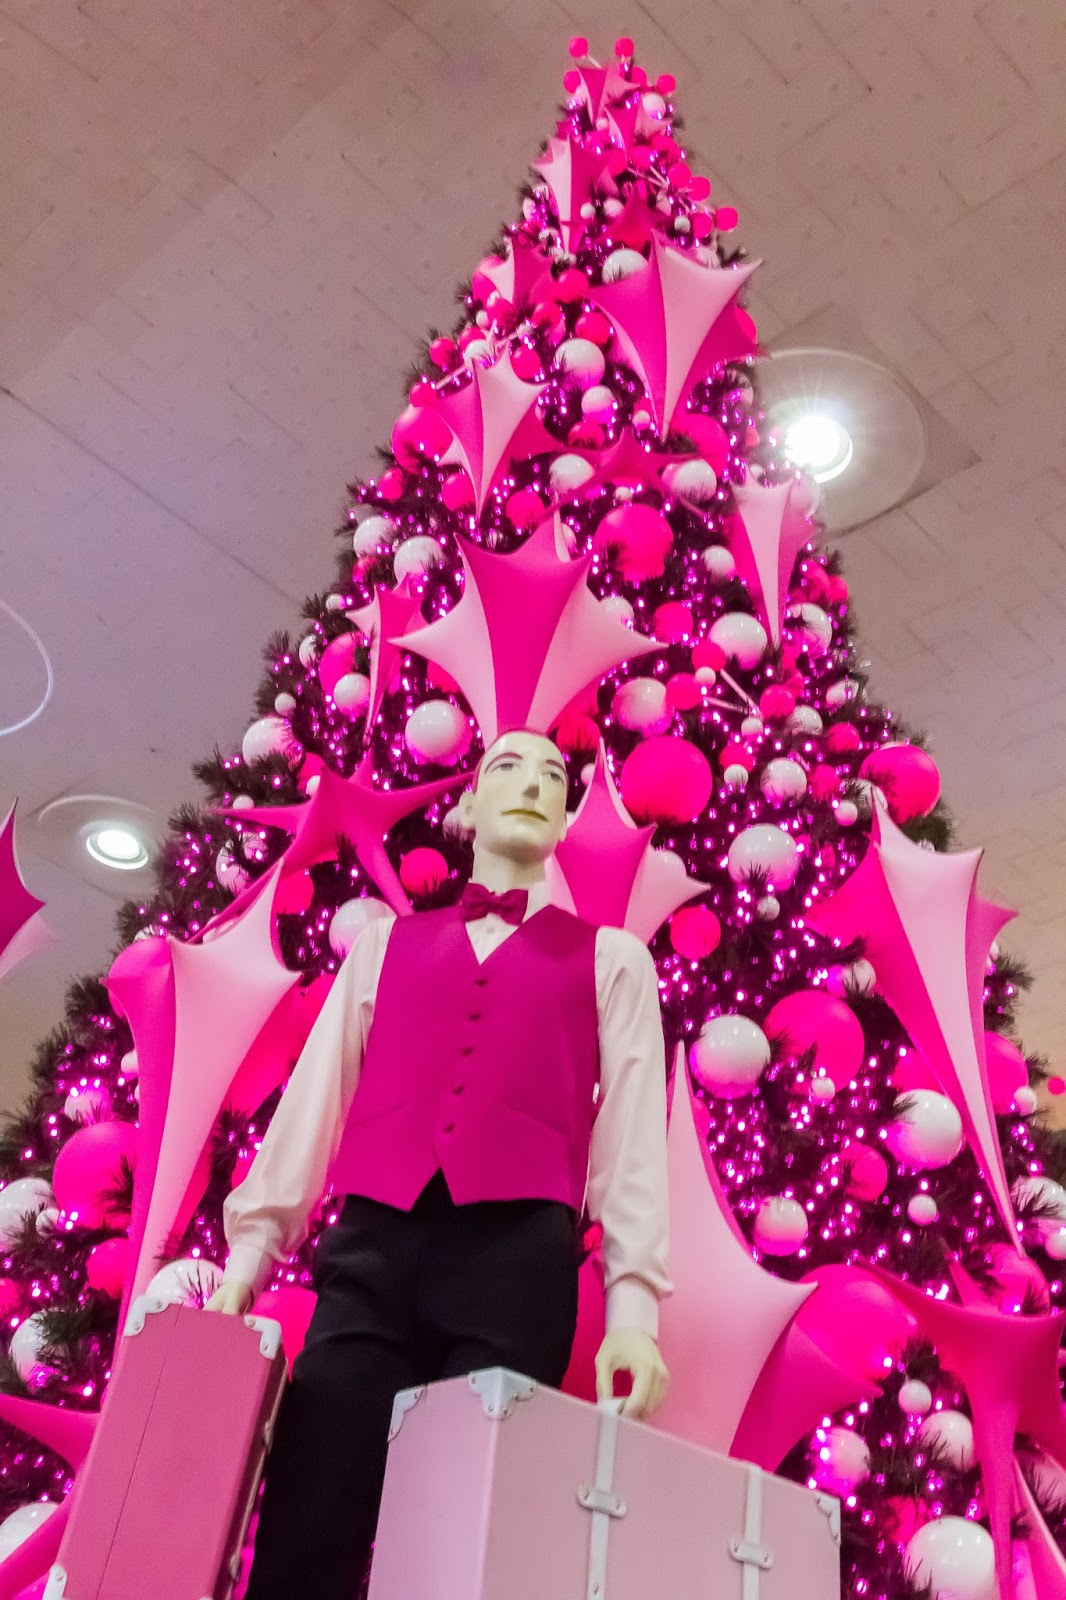 Christmas mannequin at Central Station in Montréal, Canada